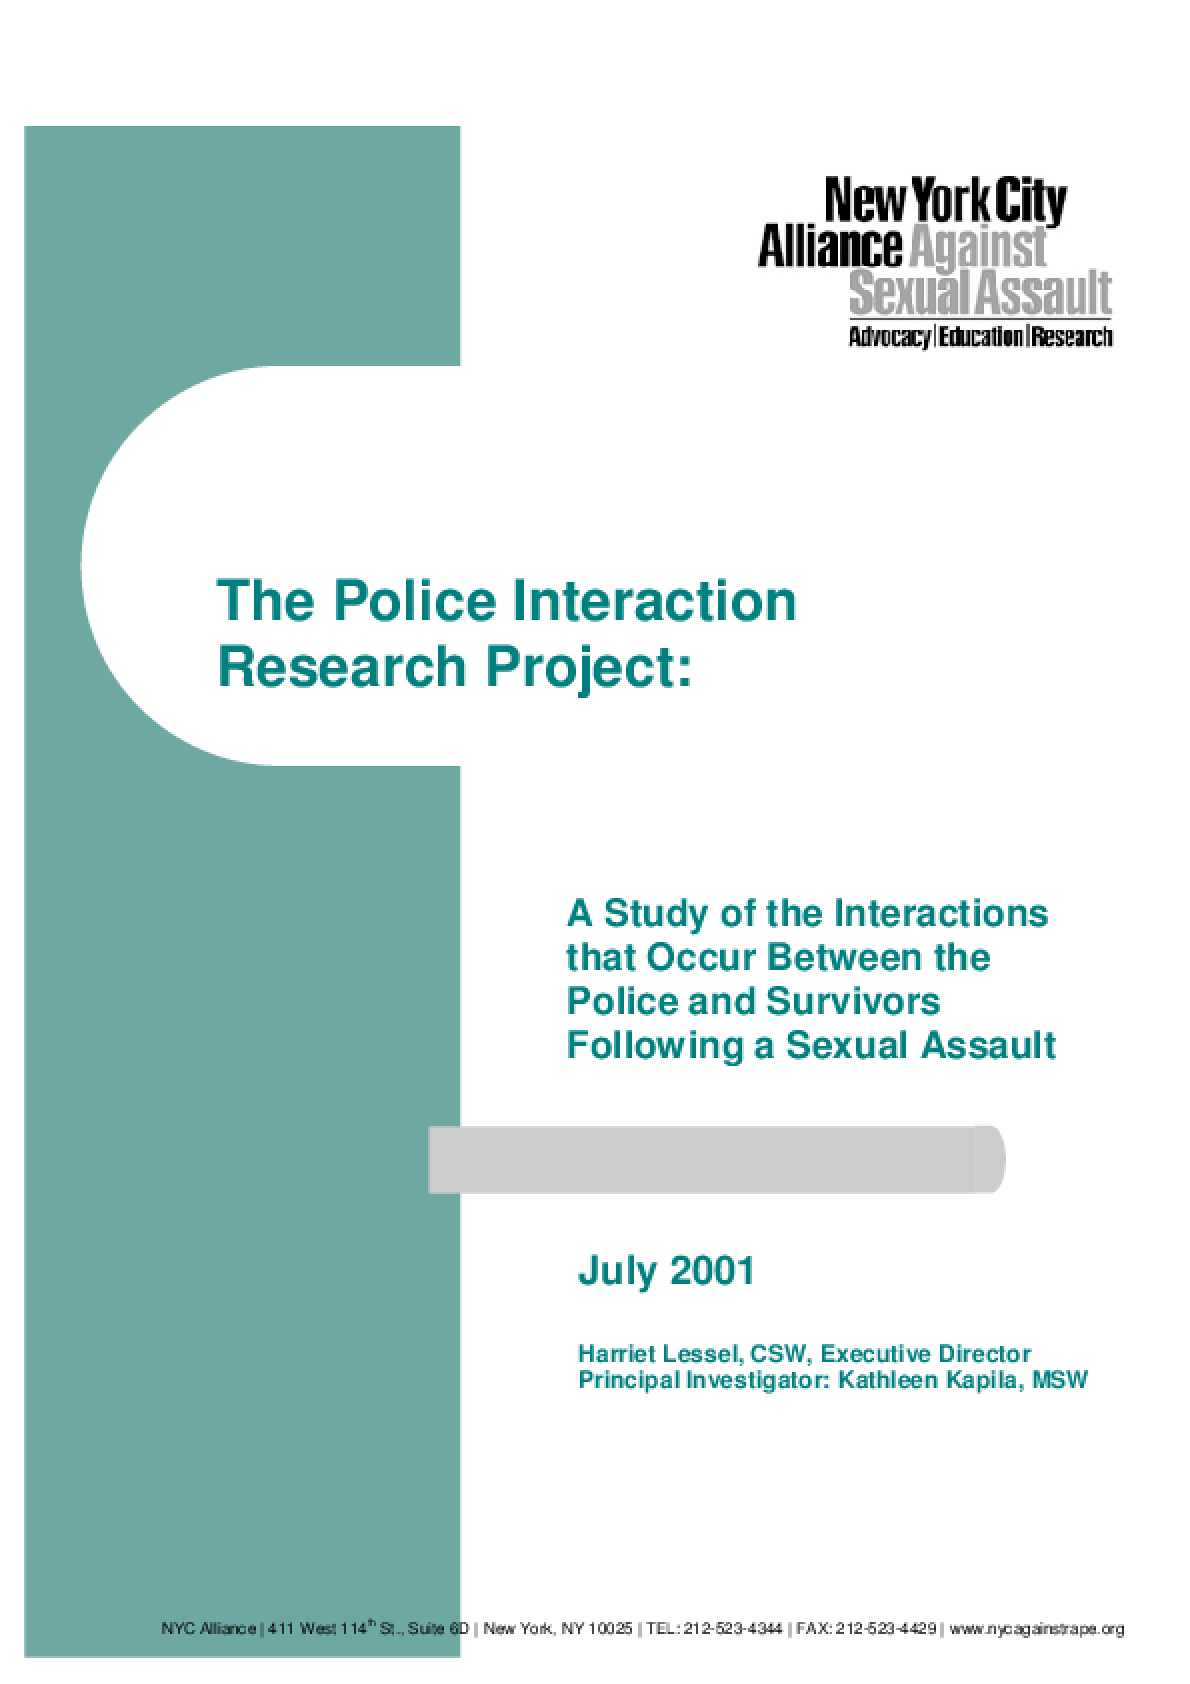 Police Interaction Research Project: A Study of the Interactions that Occur Between the Police and Survivors Following a Sexual Assault